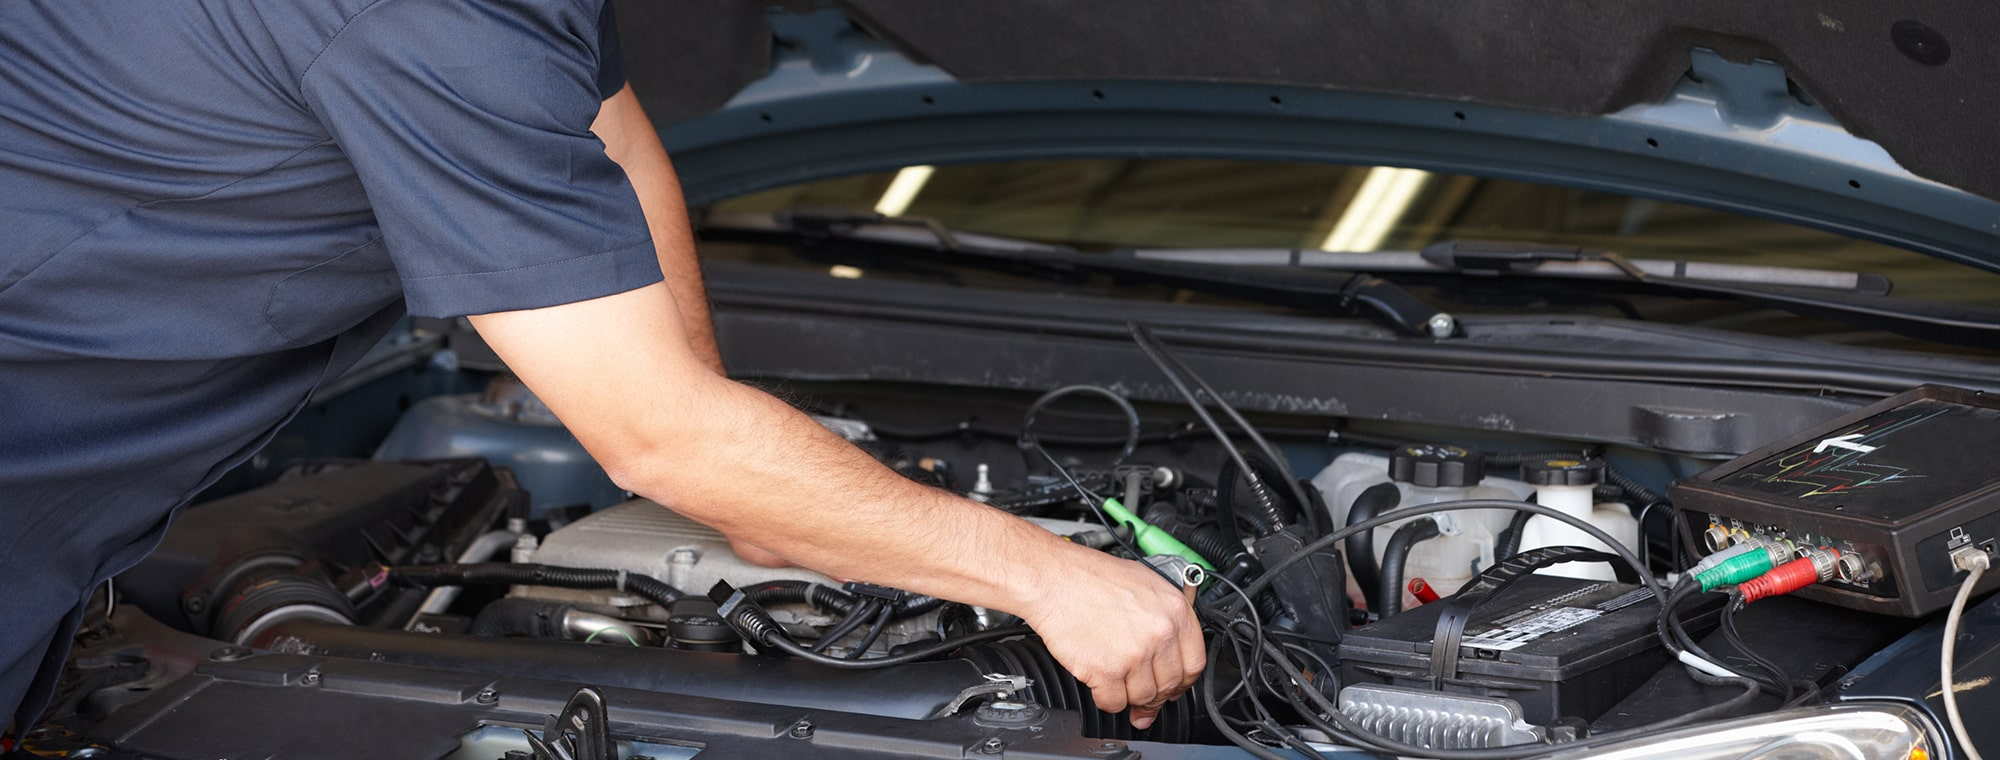 Transmission Maintenance - Essential Maintenance for Your Transmission System